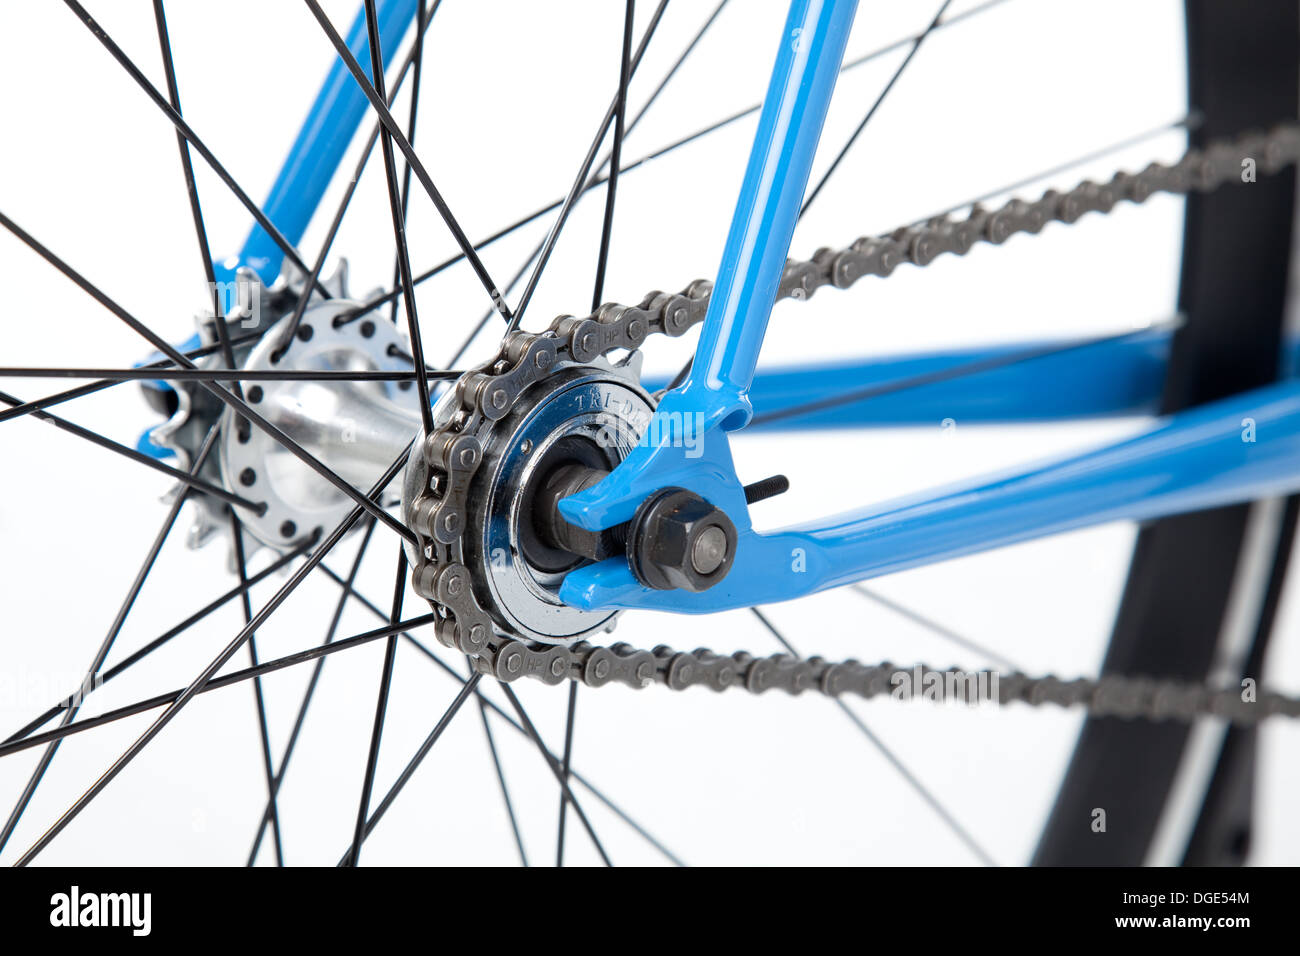 Fixed gear bicycle cog. - Stock Image